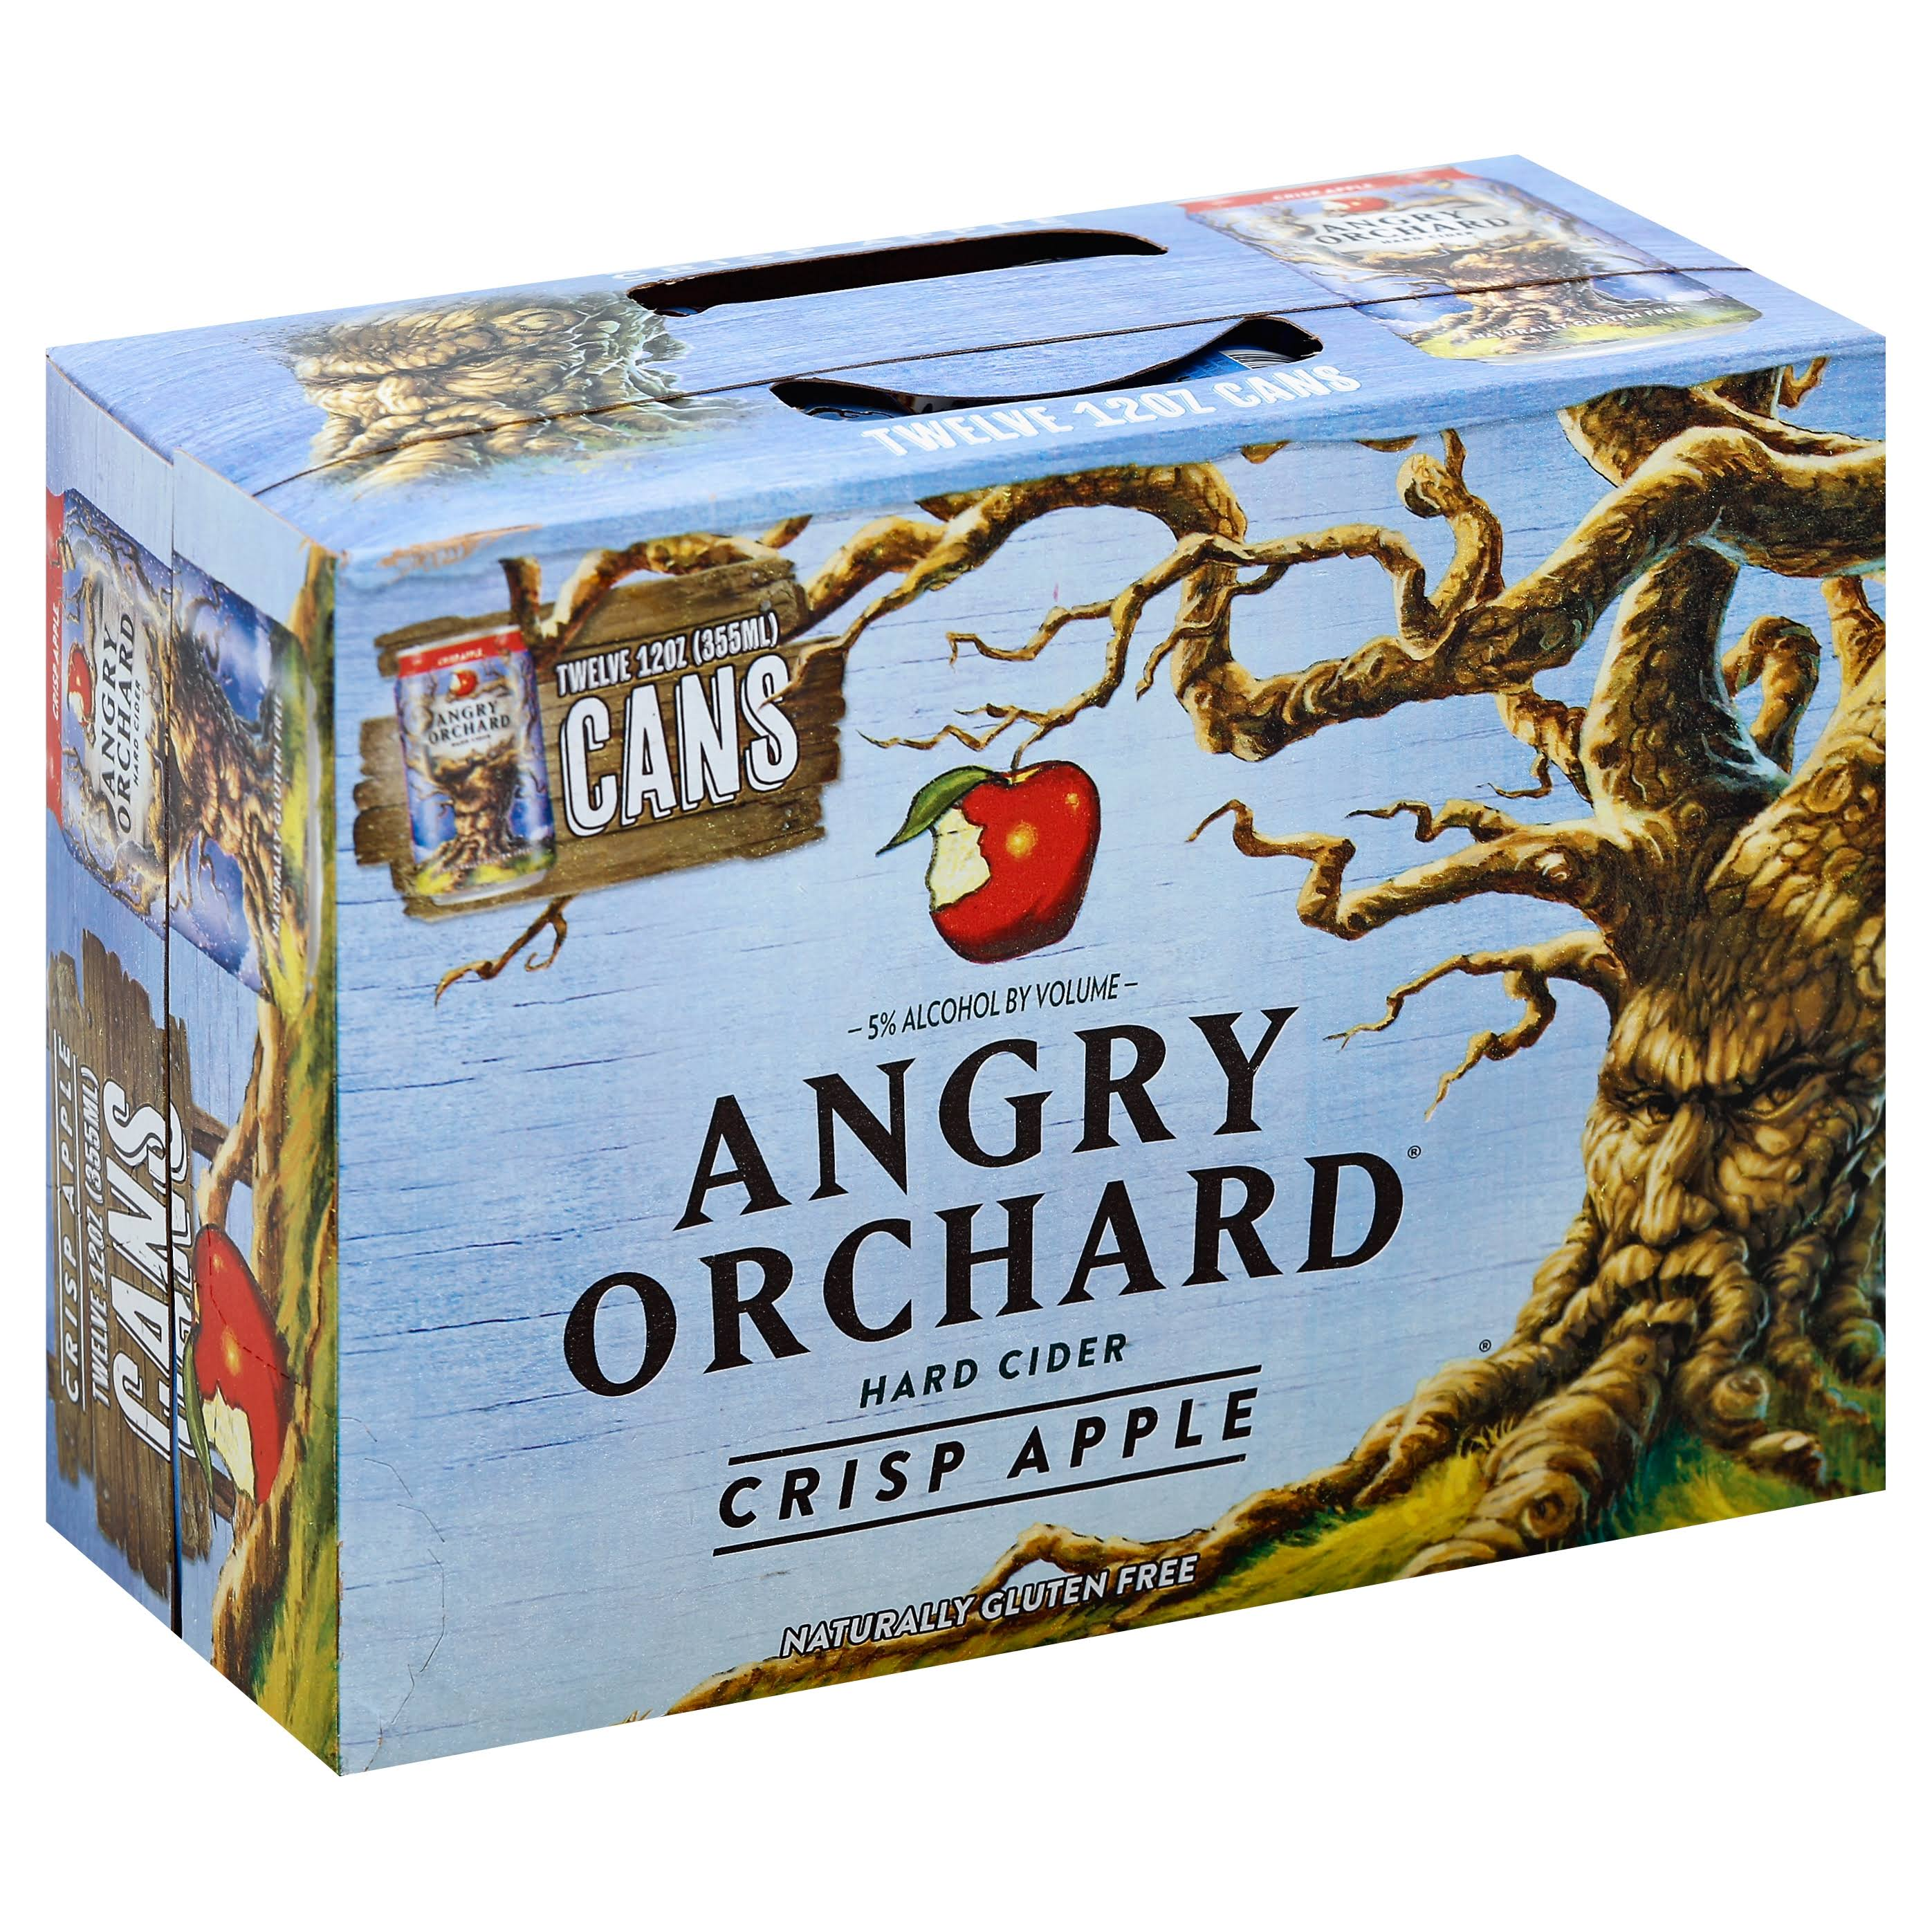 Angry Orchard Hard Cider Crisp Apple - 12 Cans